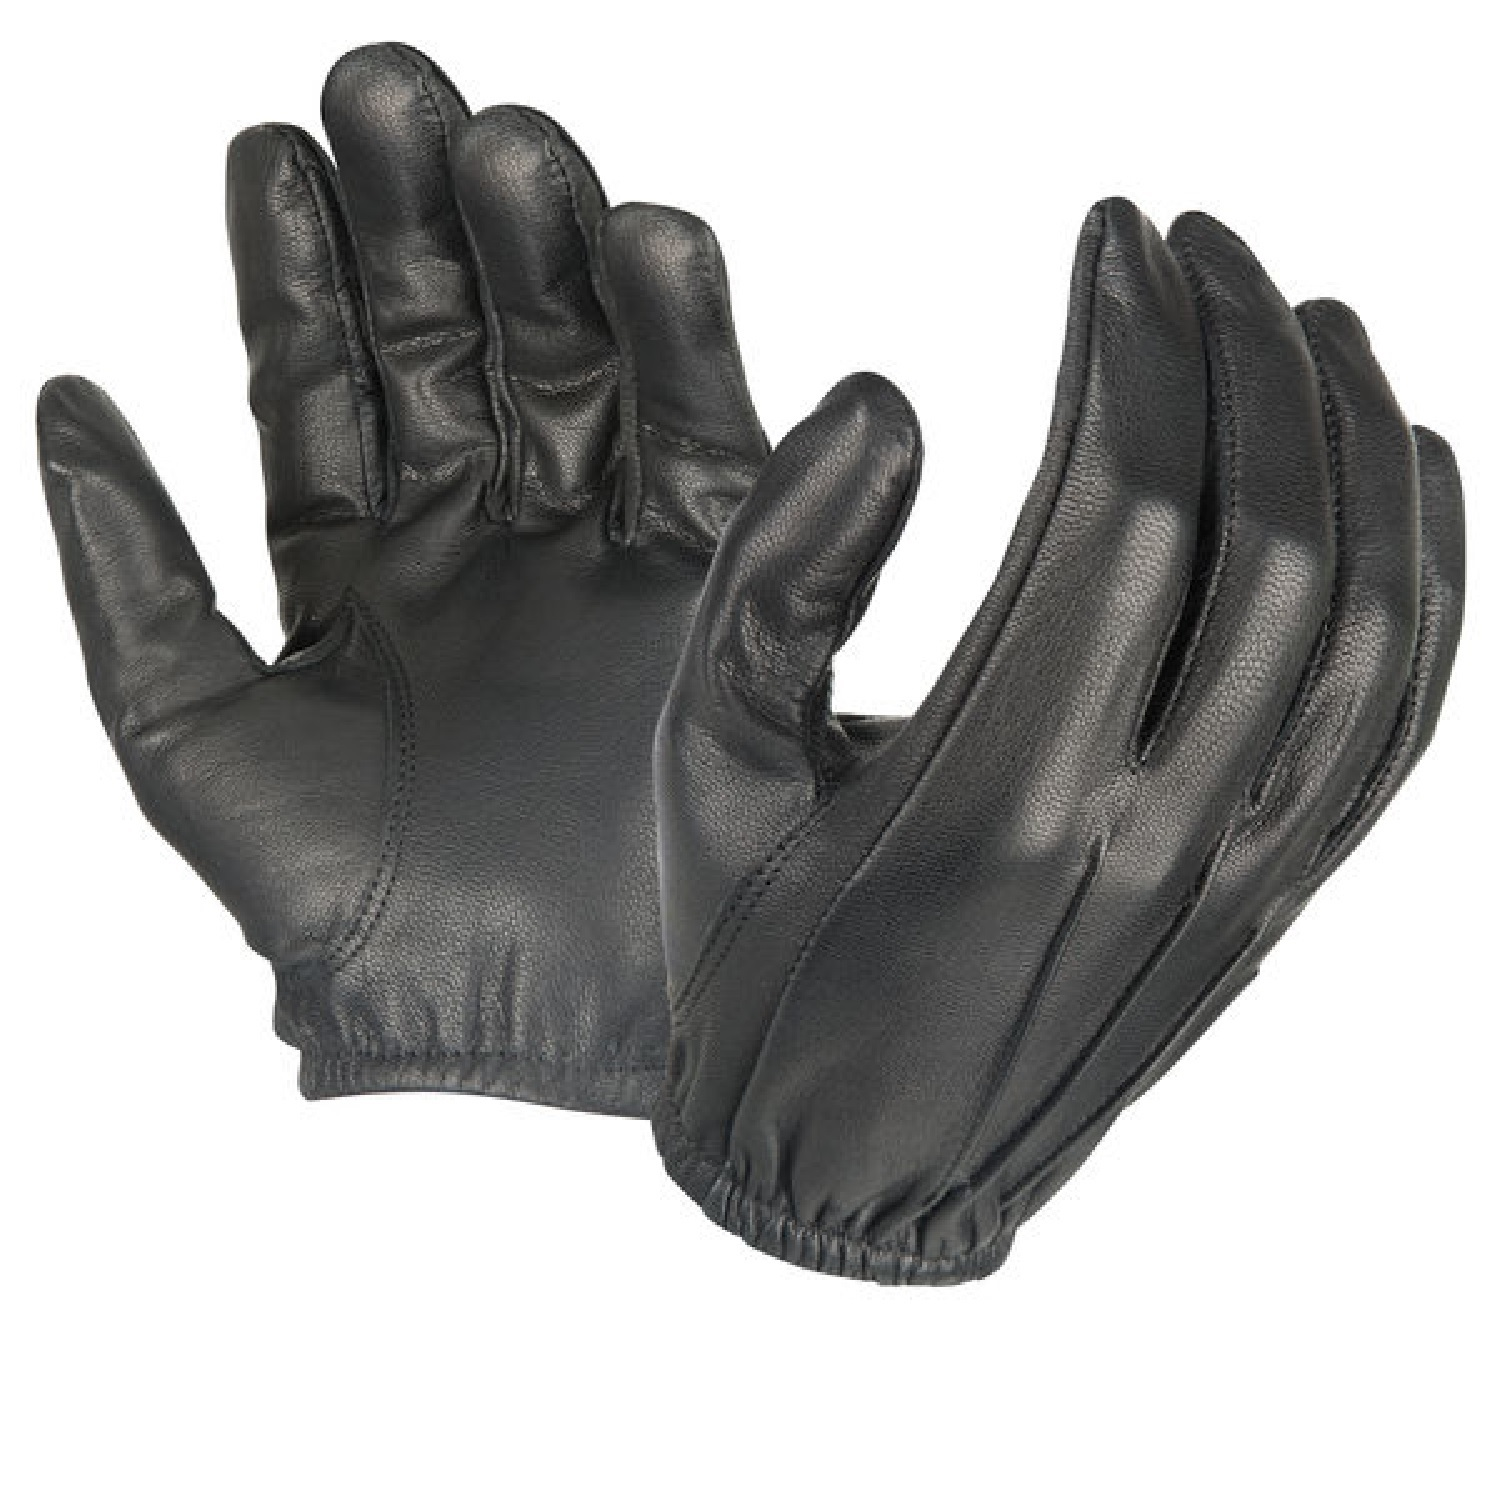 Hatch SG20P Dura-Thin Police Duty Glove Size Large